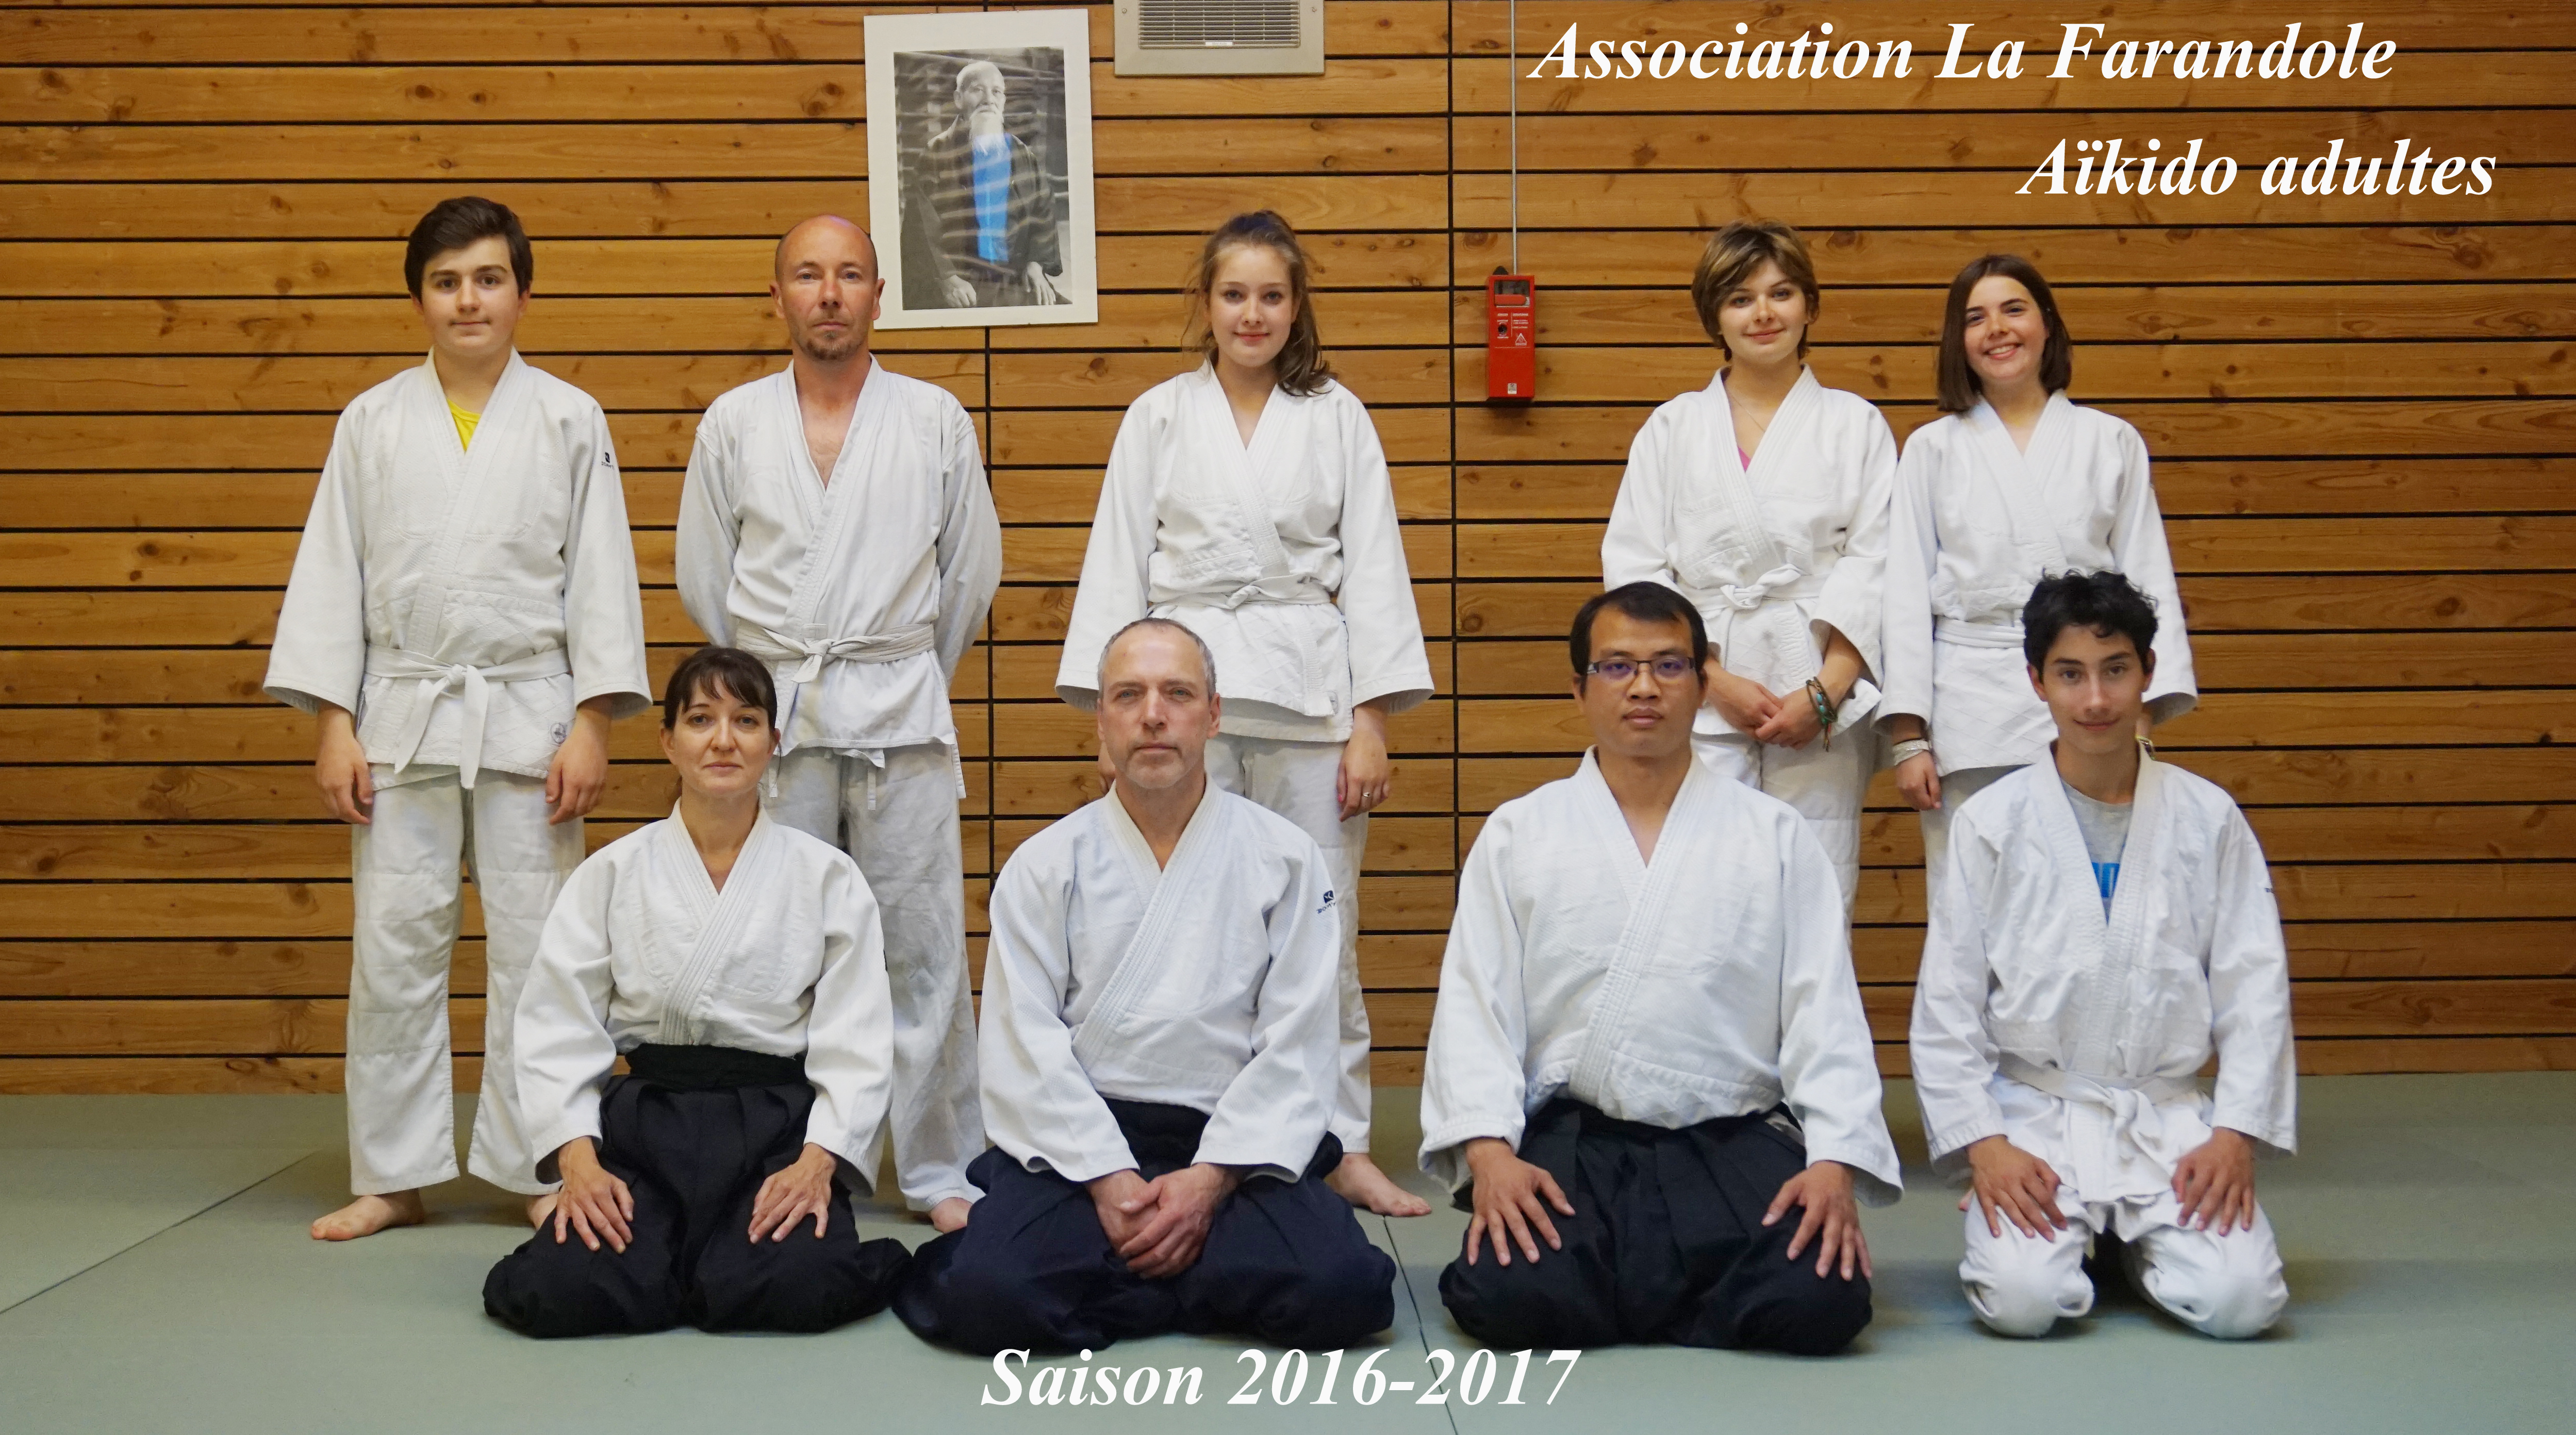 Aikido adultes